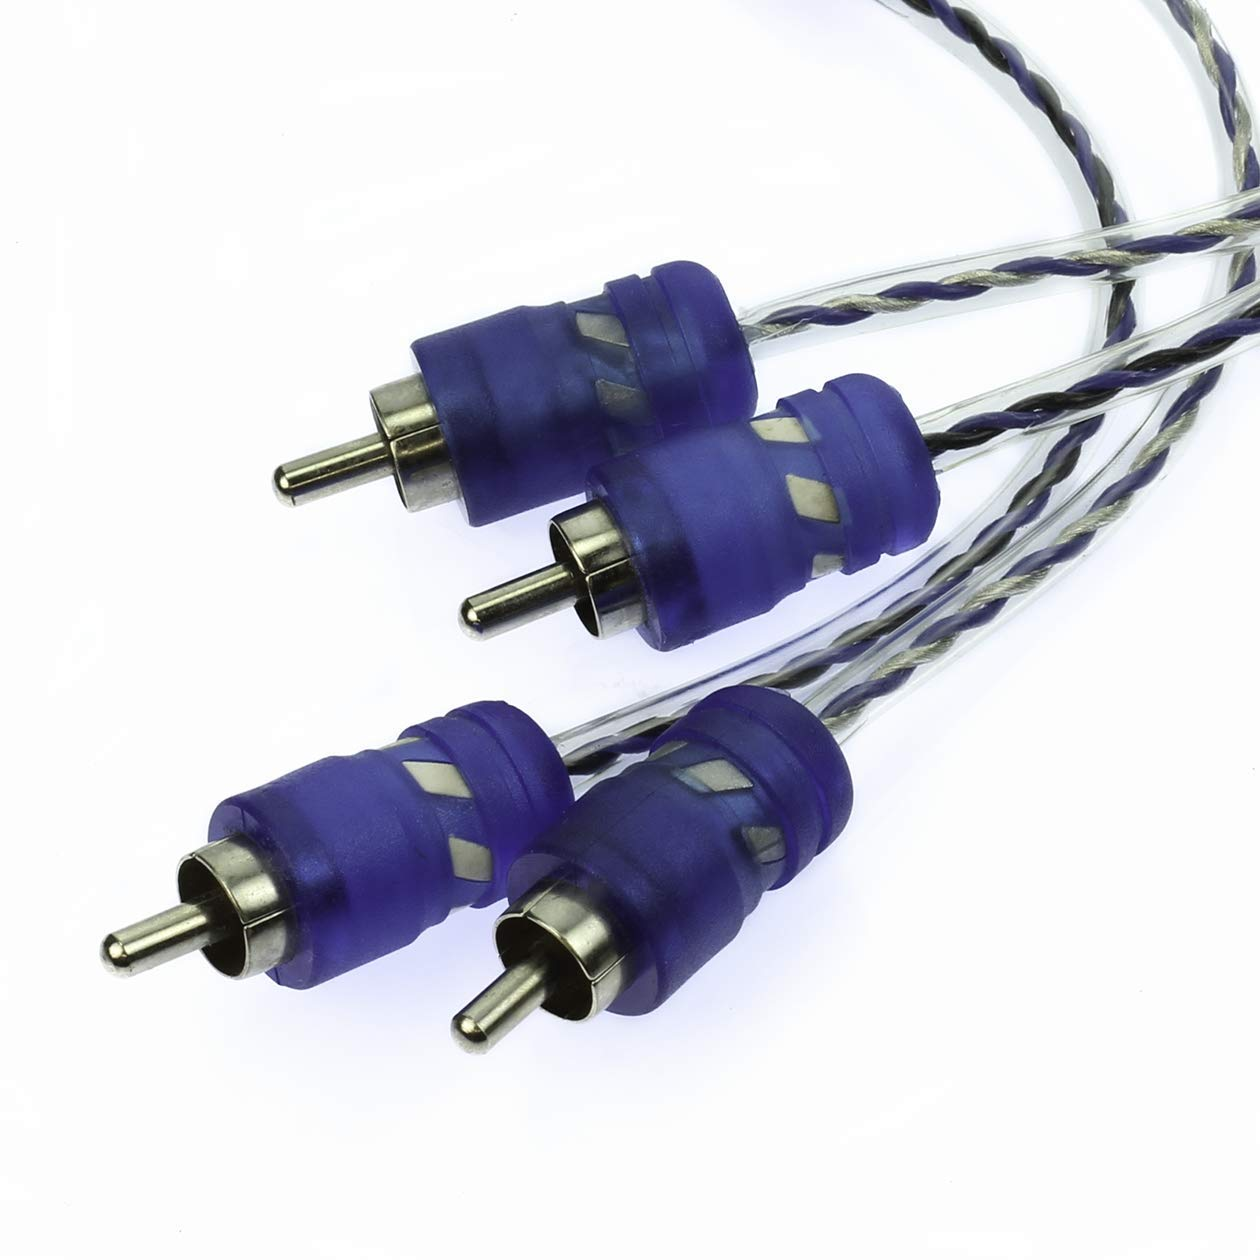 VOODOO 1.6 ft 0.5 Meter RCA interconnect Cable Blue 100/% OFC 12Volt Distributors